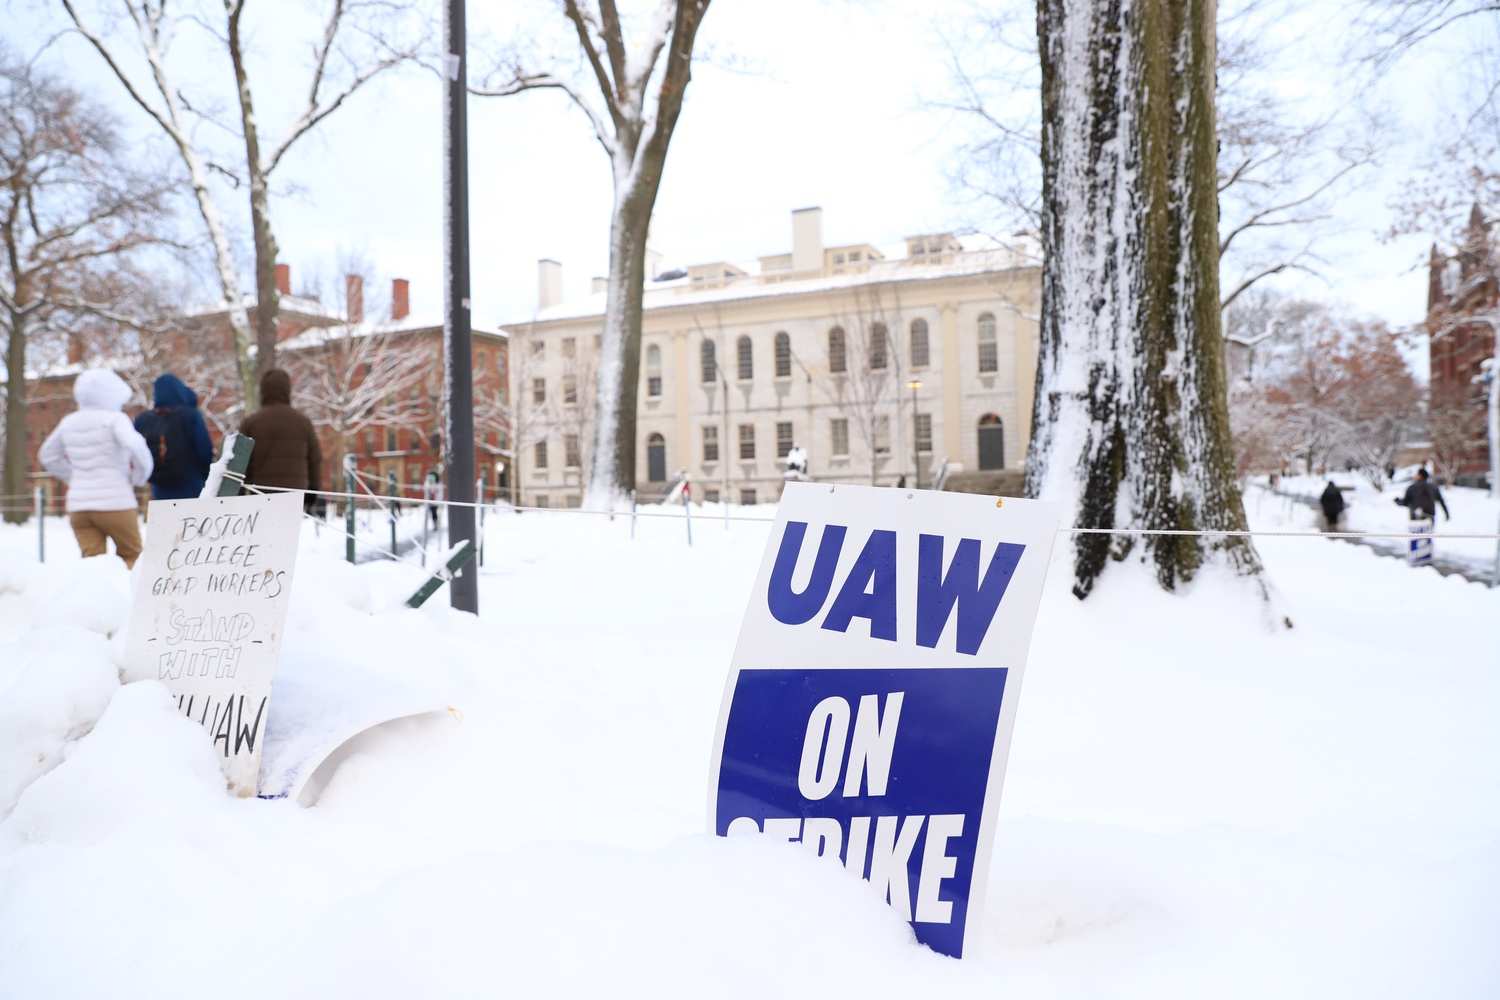 A UAW sign is left in the snow in Harvard Yard on the first day of the strike.